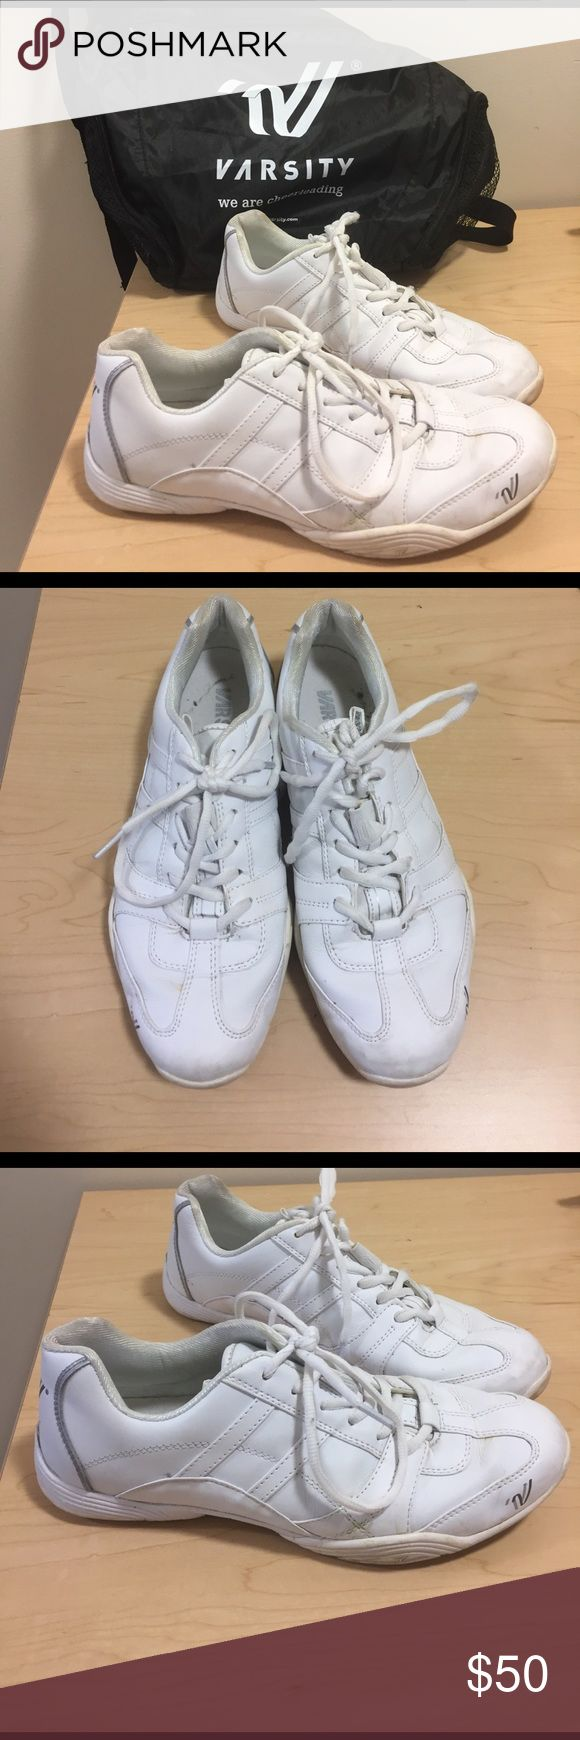 Varsity cheerleading sneakers Cheerleading sneakers, hardly ever worn! Comes with protective varsity bag Shoes Sneakers